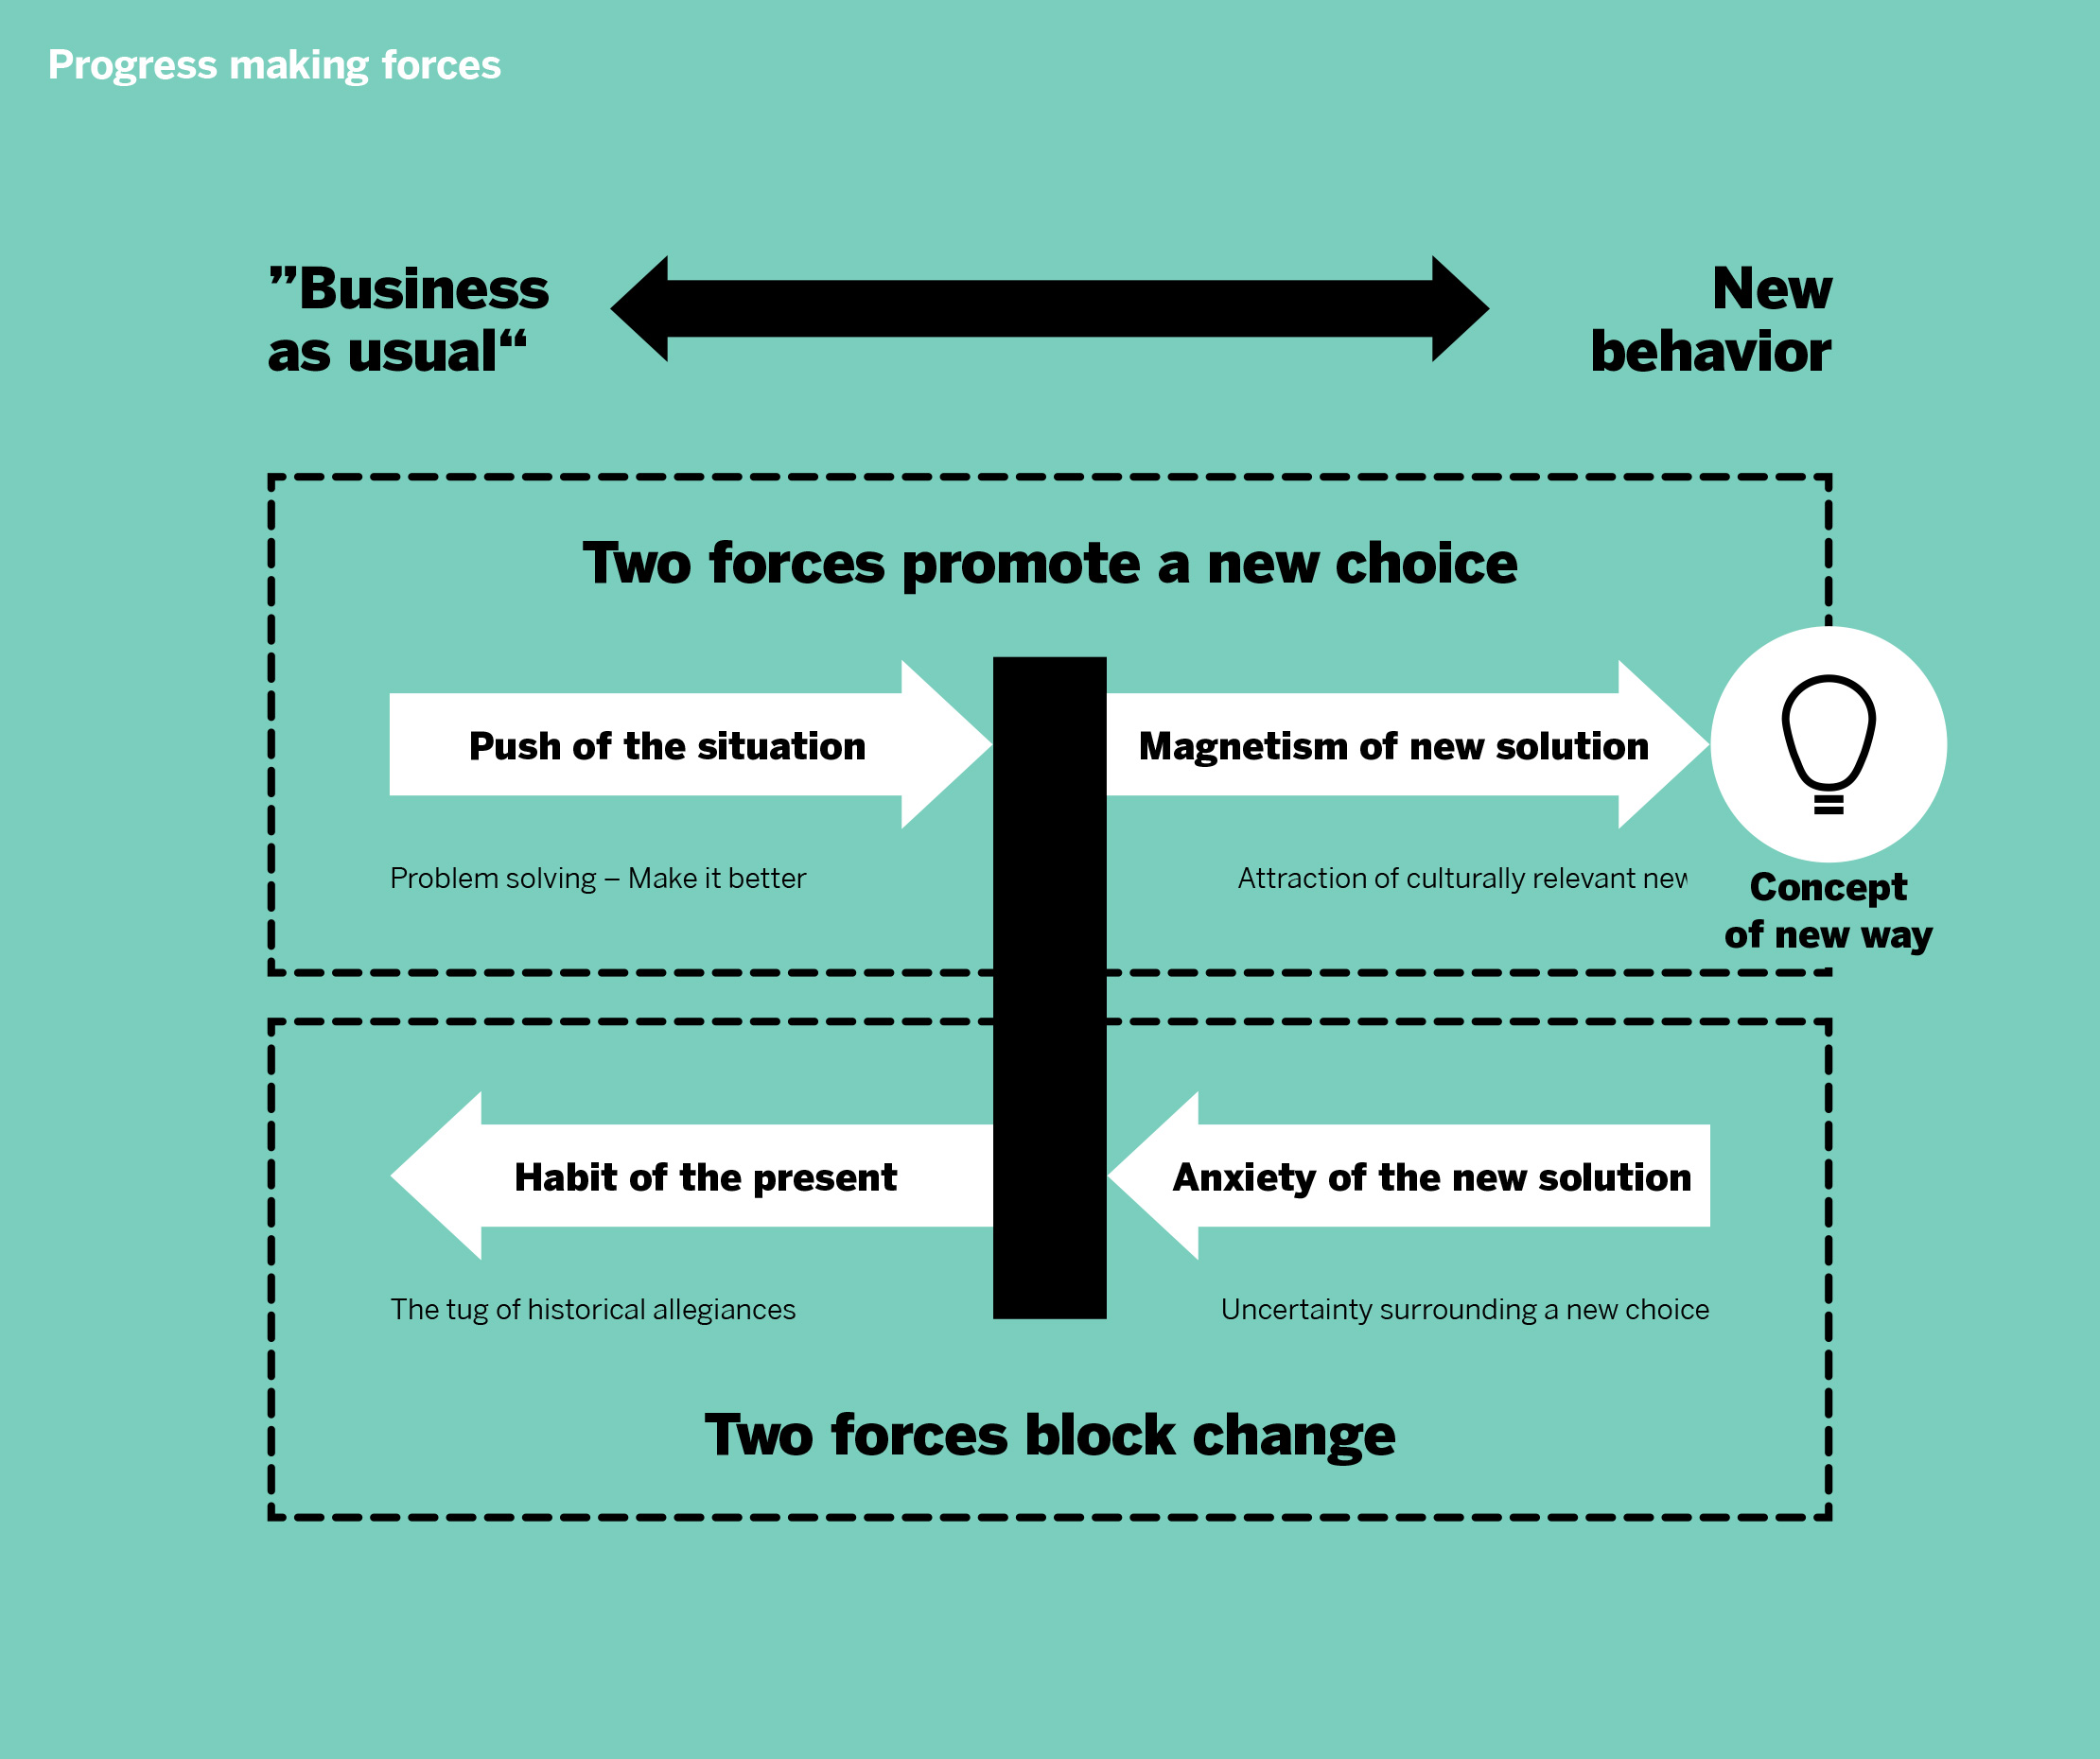 jtbd-glossar-grafik-02-progress-making-forces